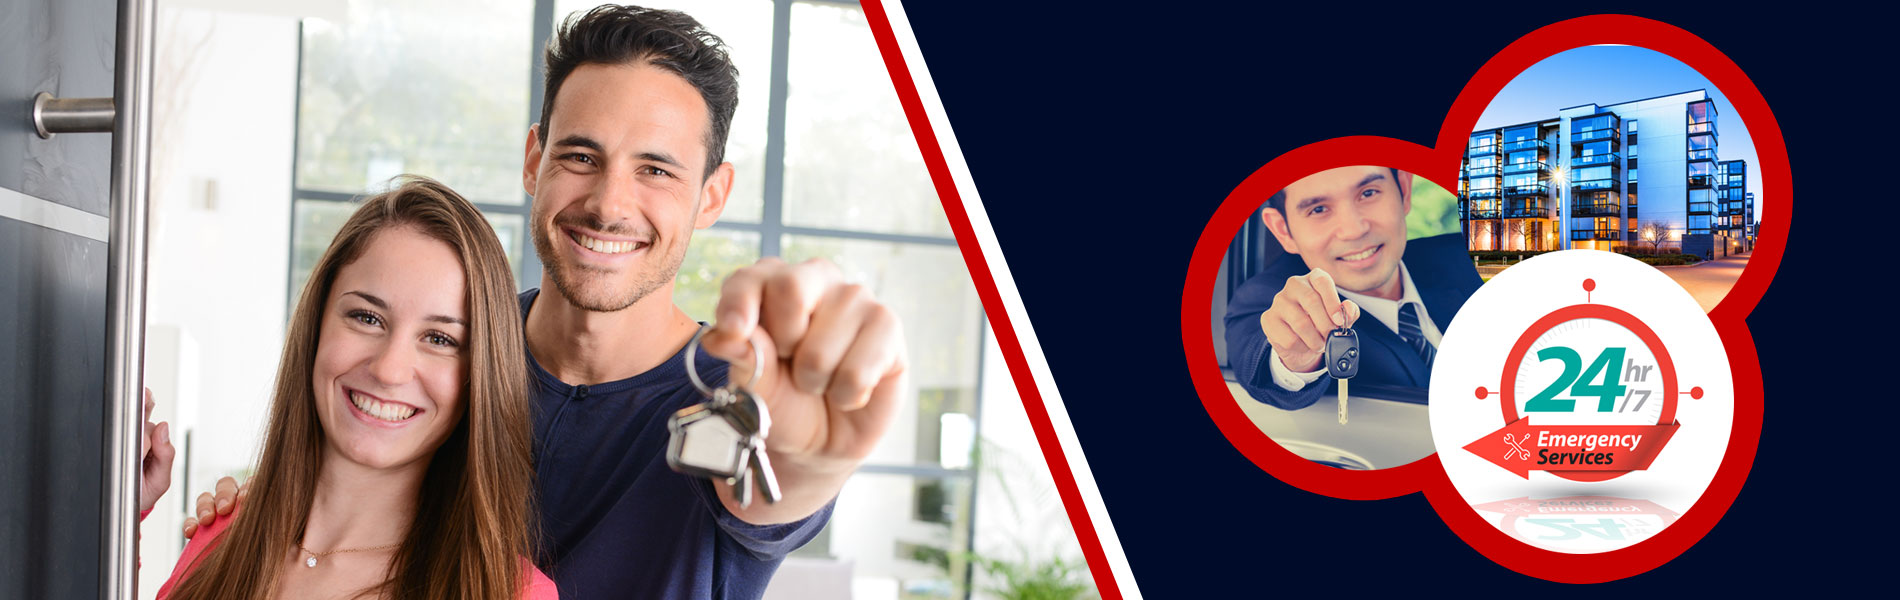 Fort Collins Emergency Locksmith Fort Collins, CO 970-340-3055